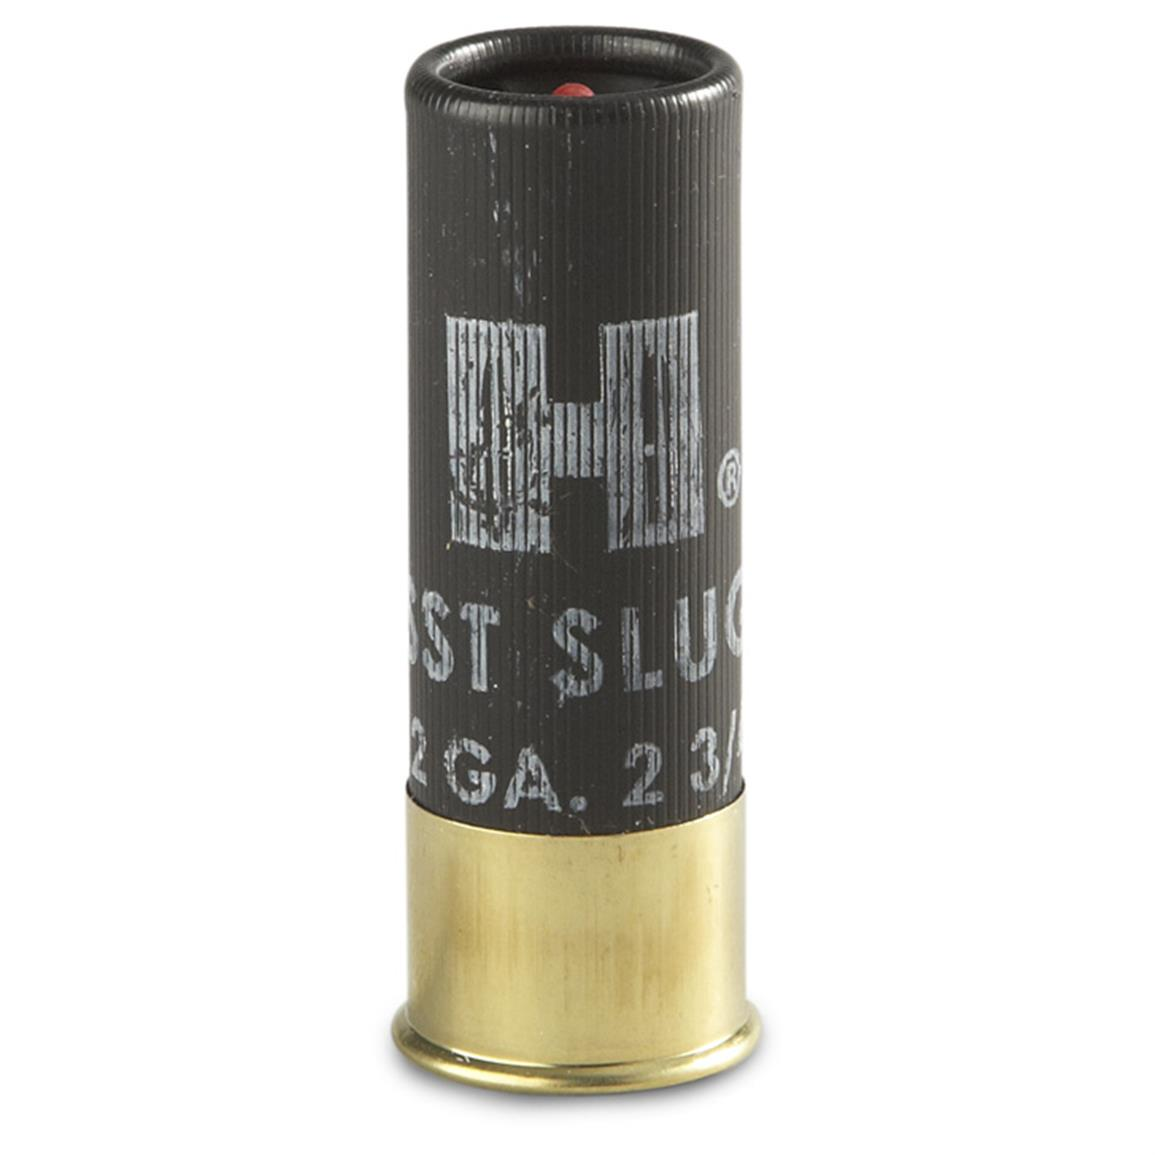 SST Shotgun Slugs 12 Gauge Ammo